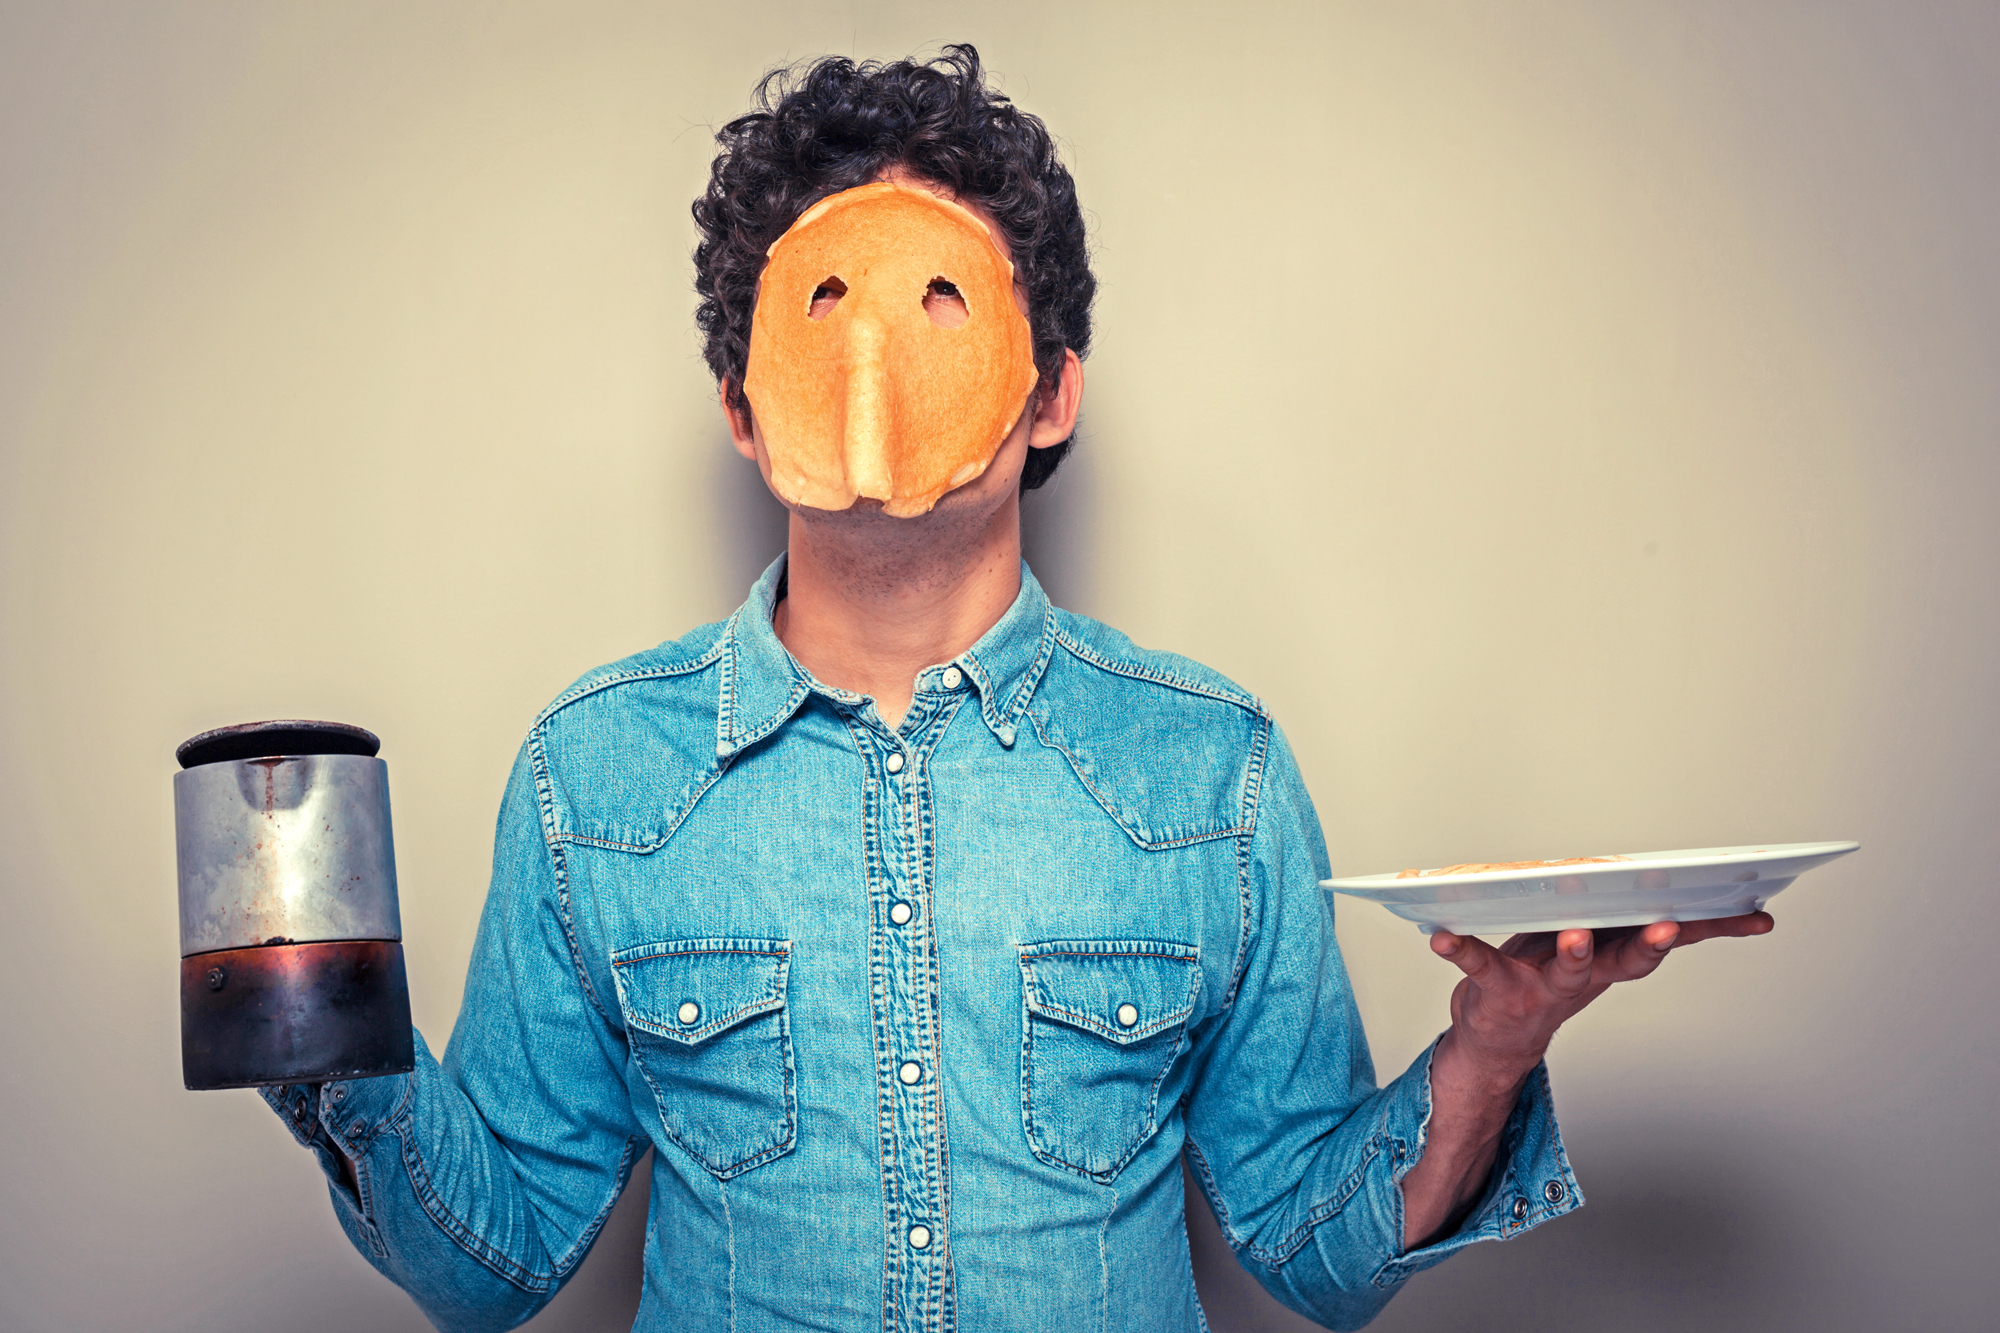 Server with pancakes on his face